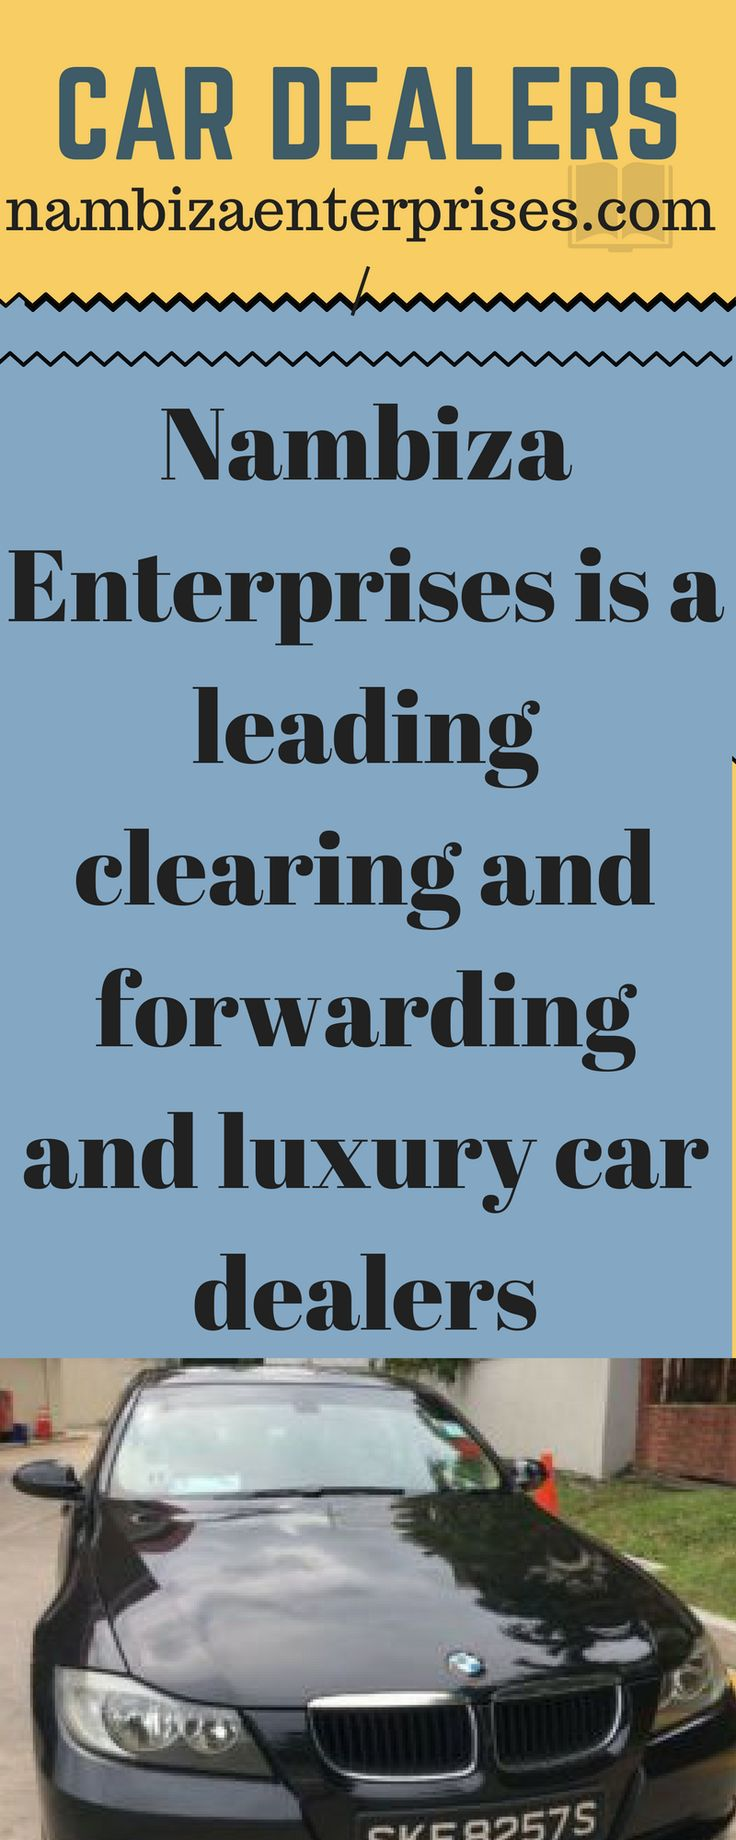 """Nambiza Enterprises is a leading clearing and forwarding and luxury car dealers & dealerships in Tanzania. Contact at : +255762403891"""" http://nambizaenterprises.com/"""